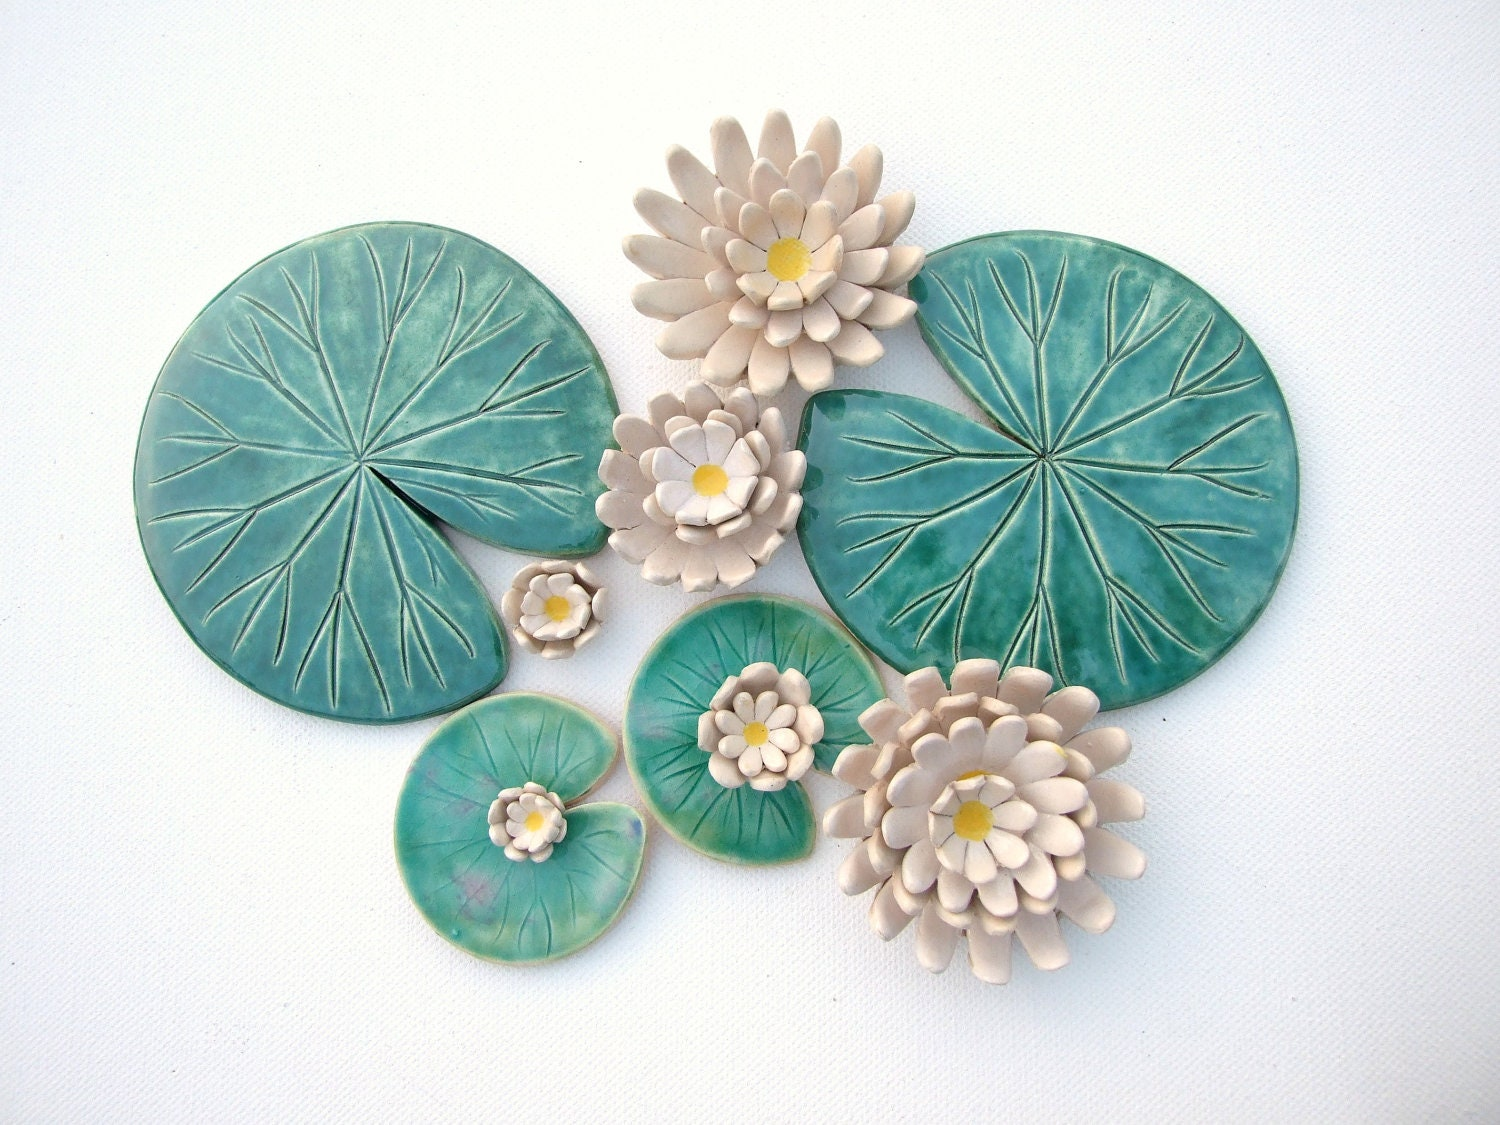 Lily pad coaster Handmade ceramic Waterlily green leaves and - photo#24